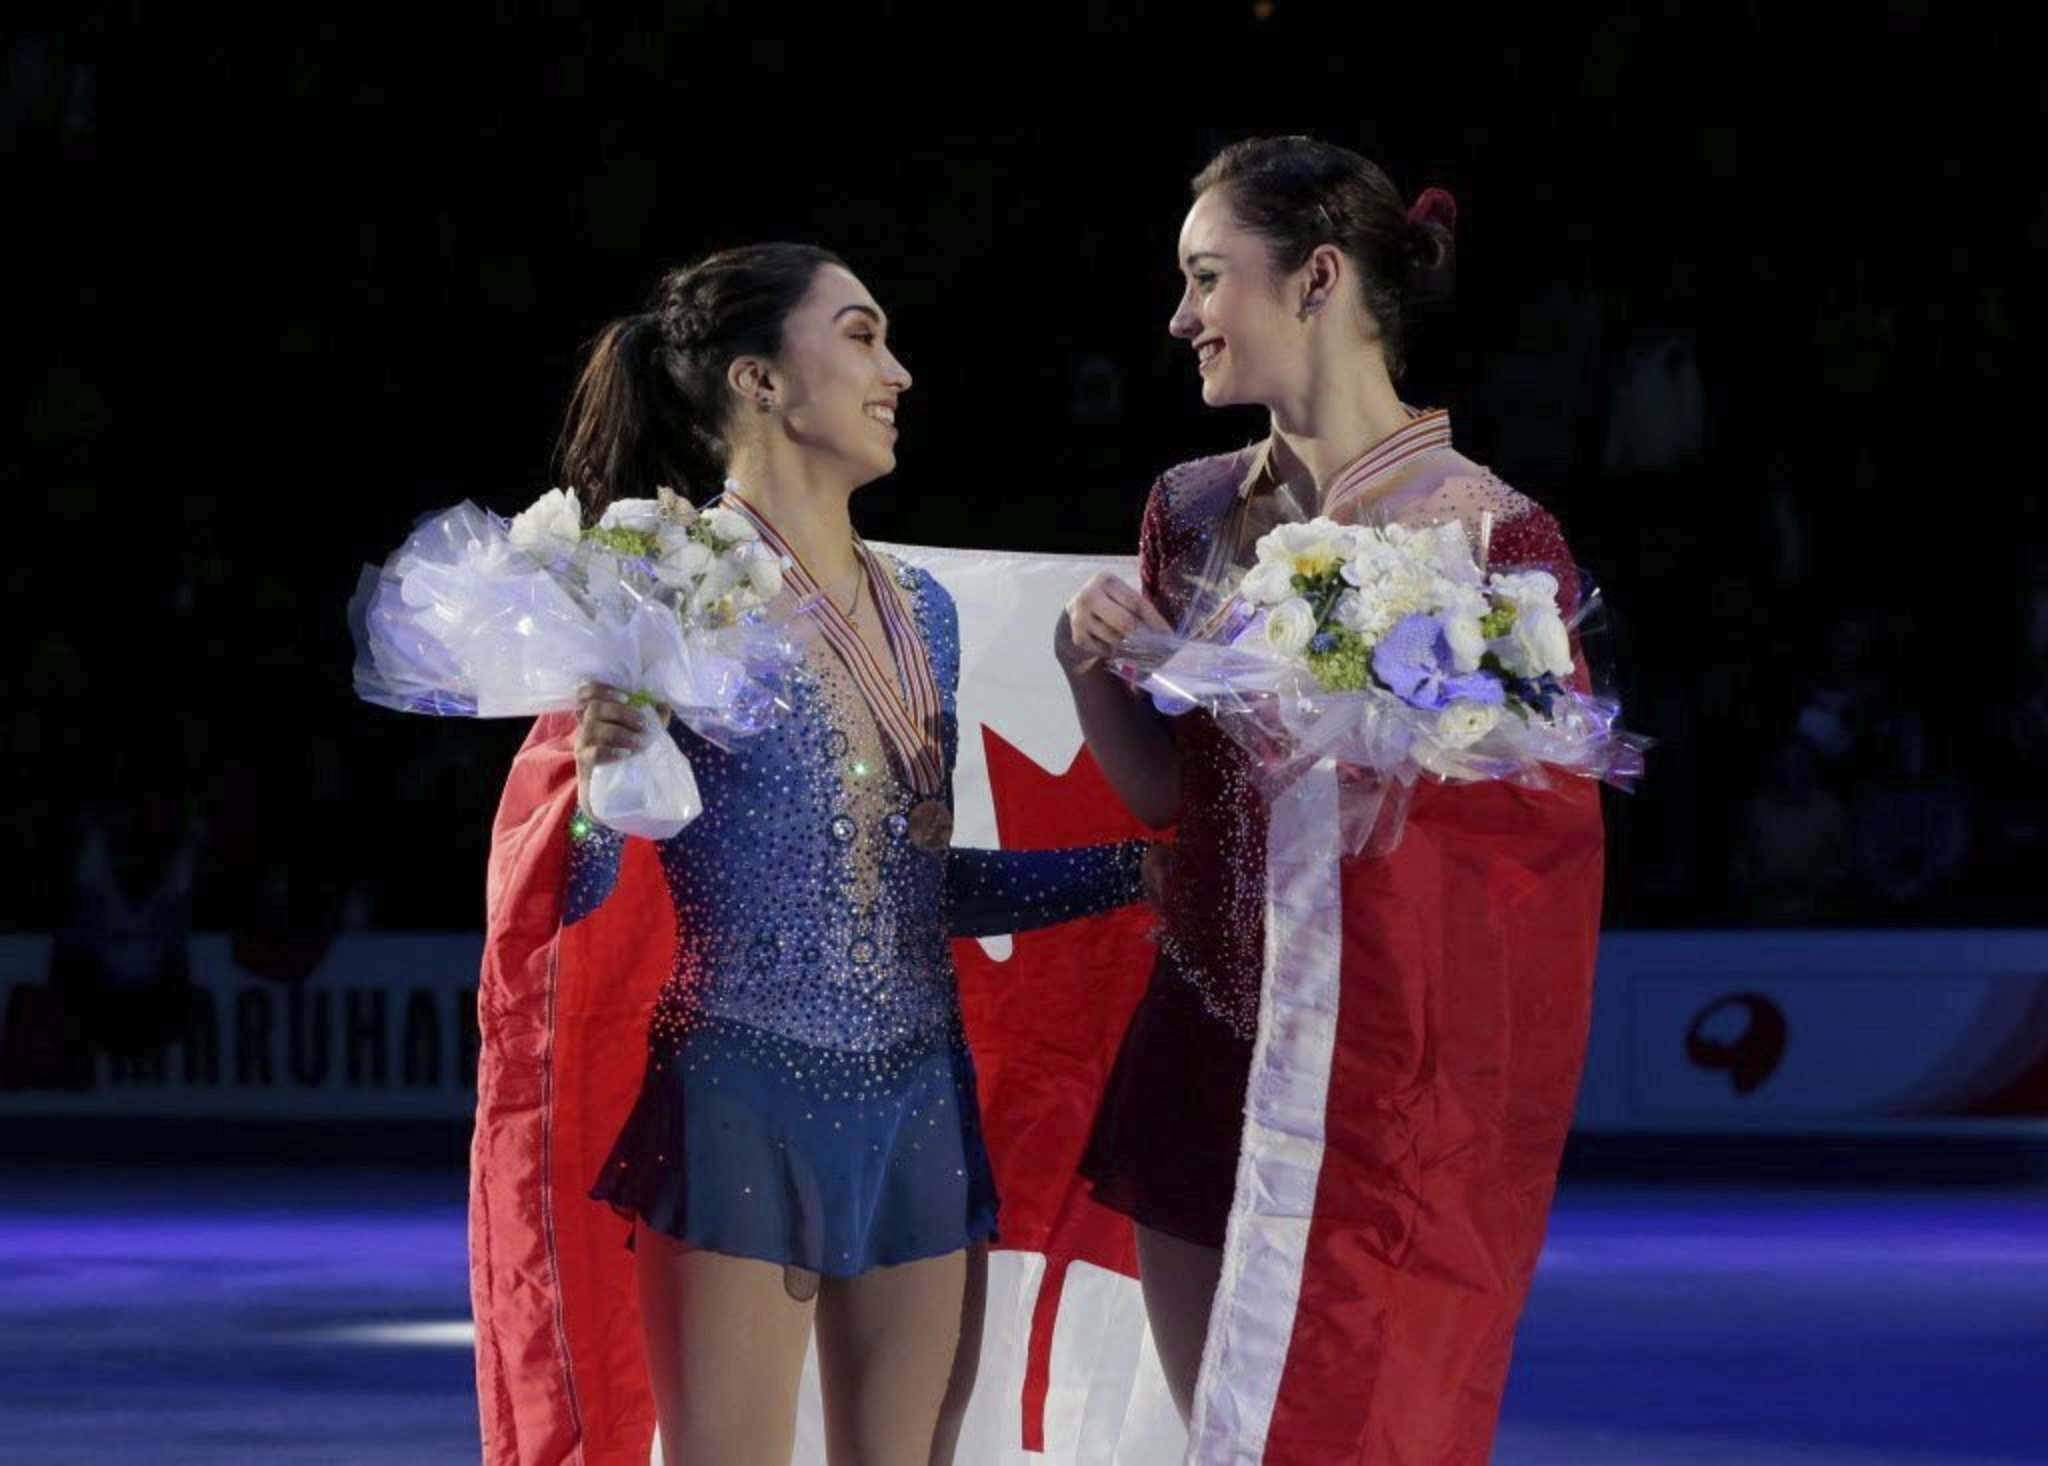 Ivan Sekretarev / The Associated Press Files</p><p>Kaetlyn Osmond (right) and Gabrielle Daleman, both of Canada, smile posing with their silver and bronze medals and the national flag during victory ceremony at the World figure skating championships in Helsinki, Finland, on Friday, March 31, 2017.</p>